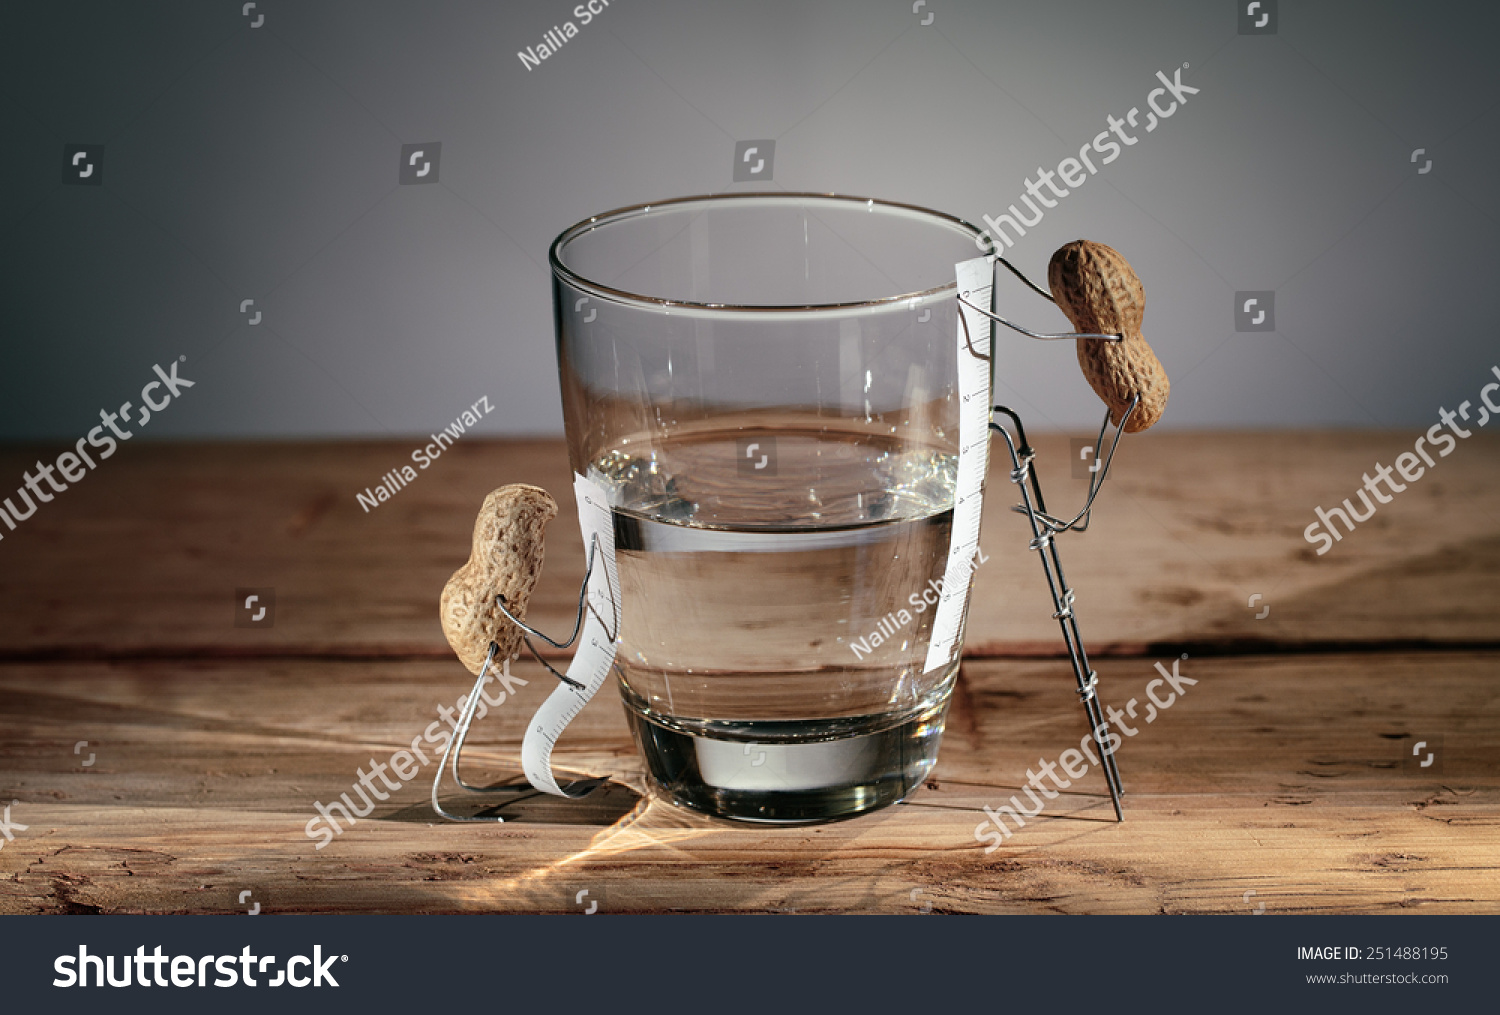 Simple things peanuts miniature half empty or half full for Things that are empty